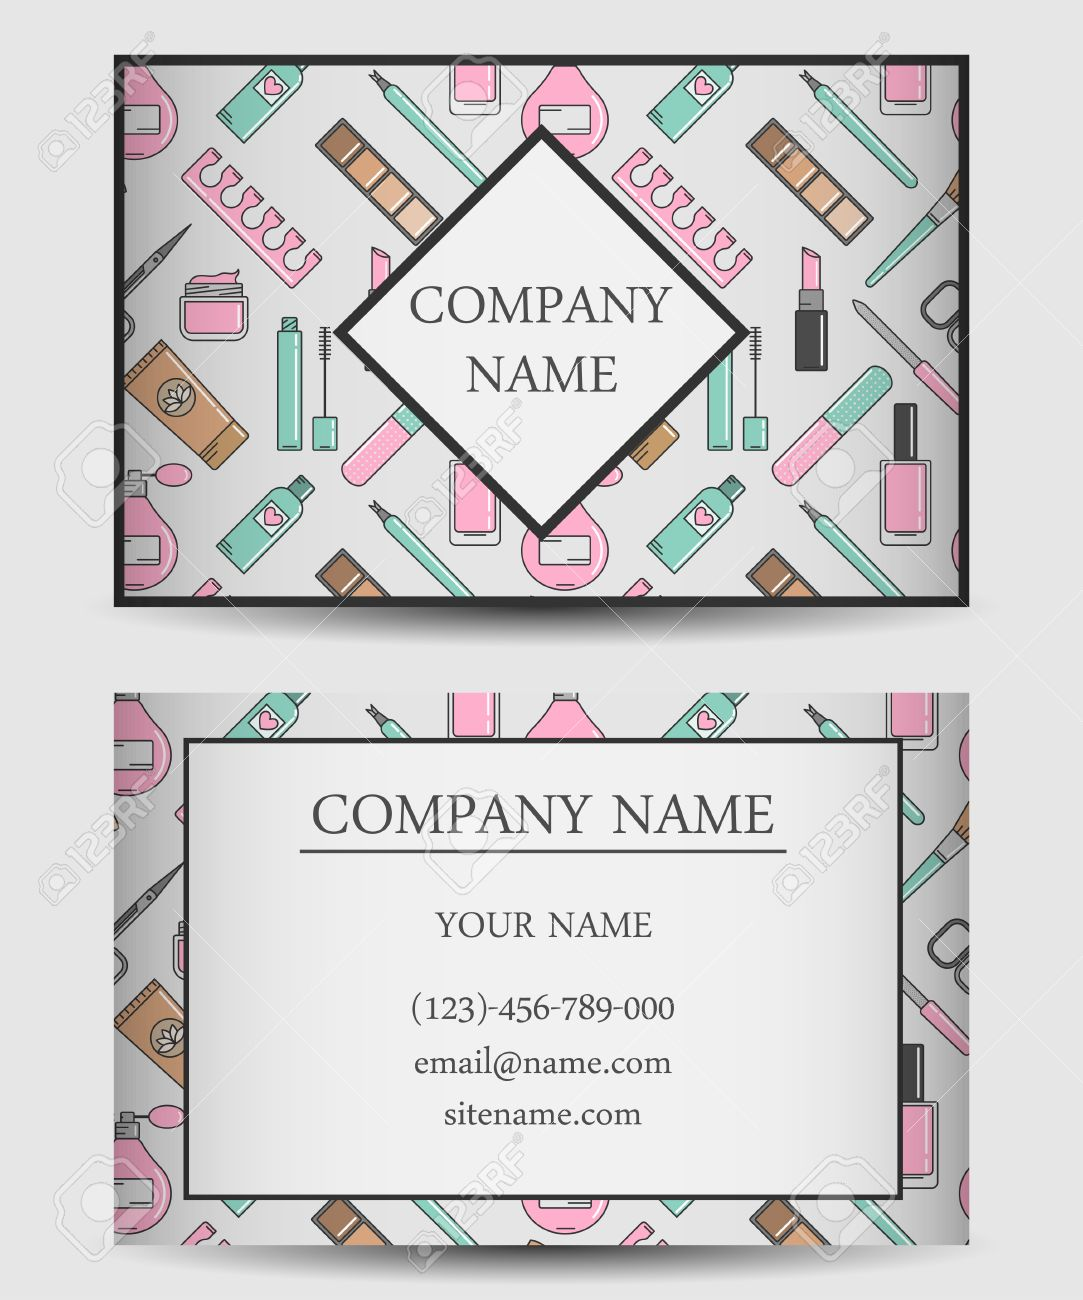 Vector business card template for beauty salon flat design vector business card template for beauty salon flat design manicure pedicure and cosmetics colourmoves